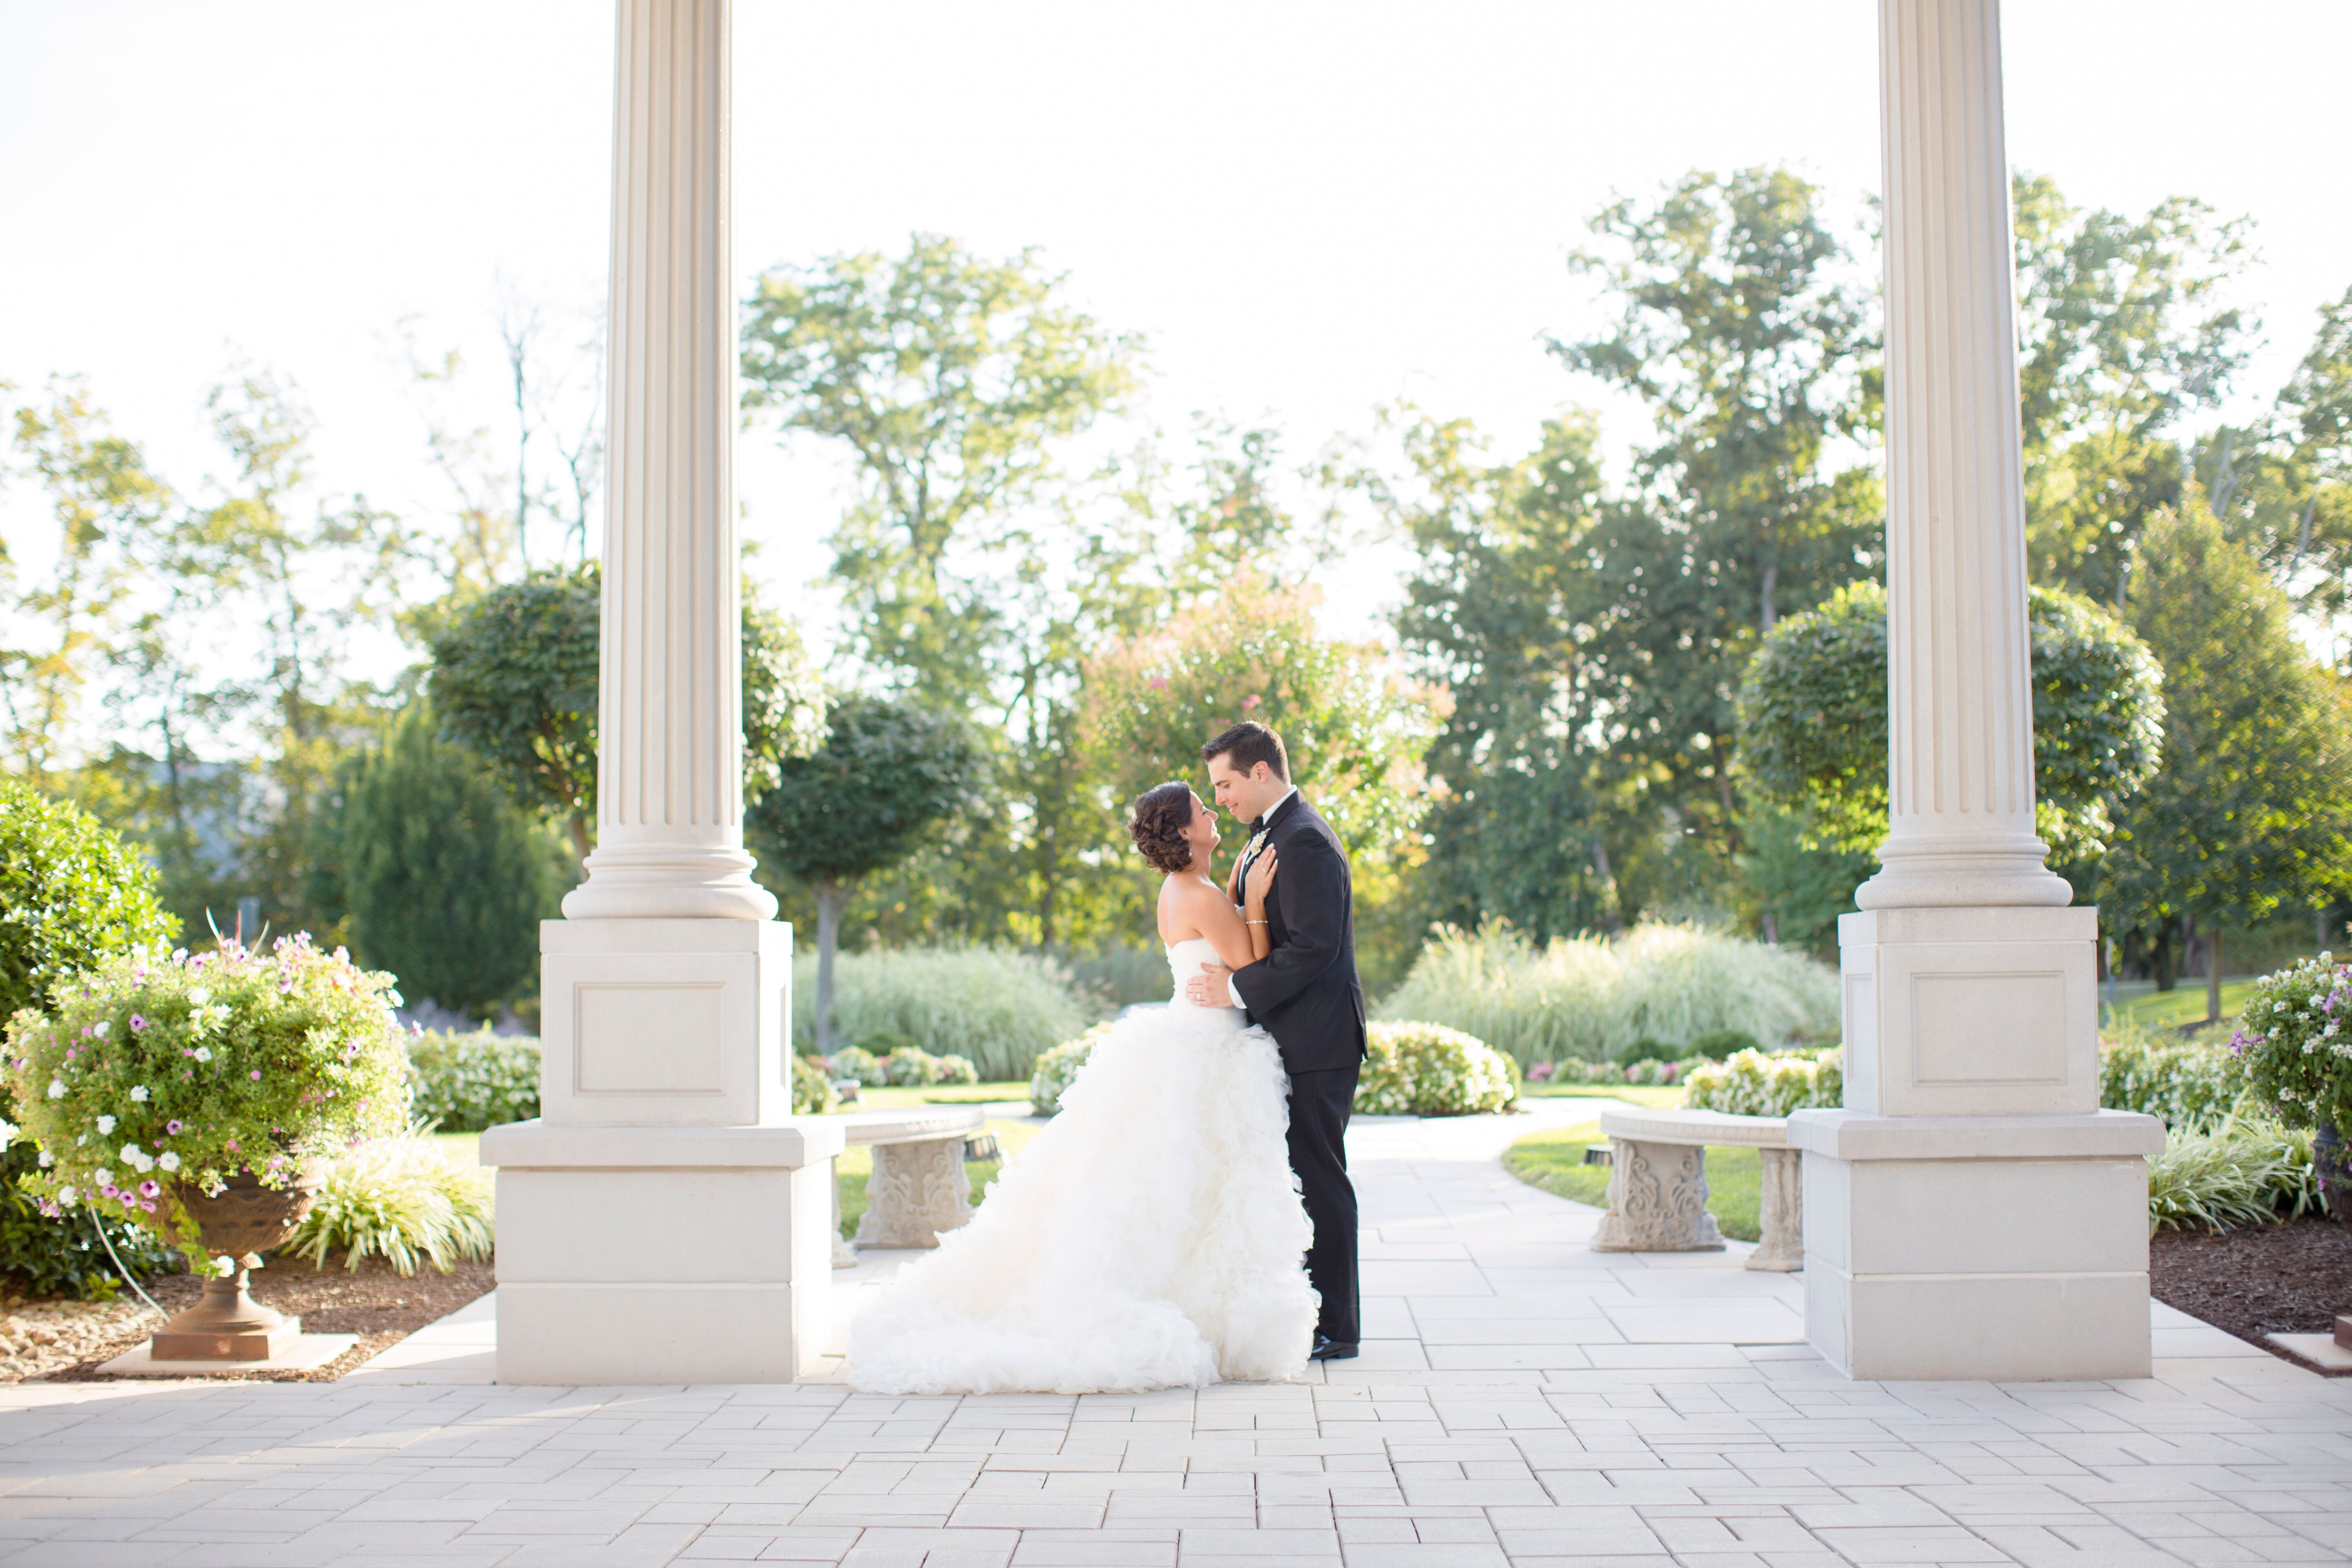 A romantic wedding at the palace at somerset park in for Aaina beauty salon somerset nj